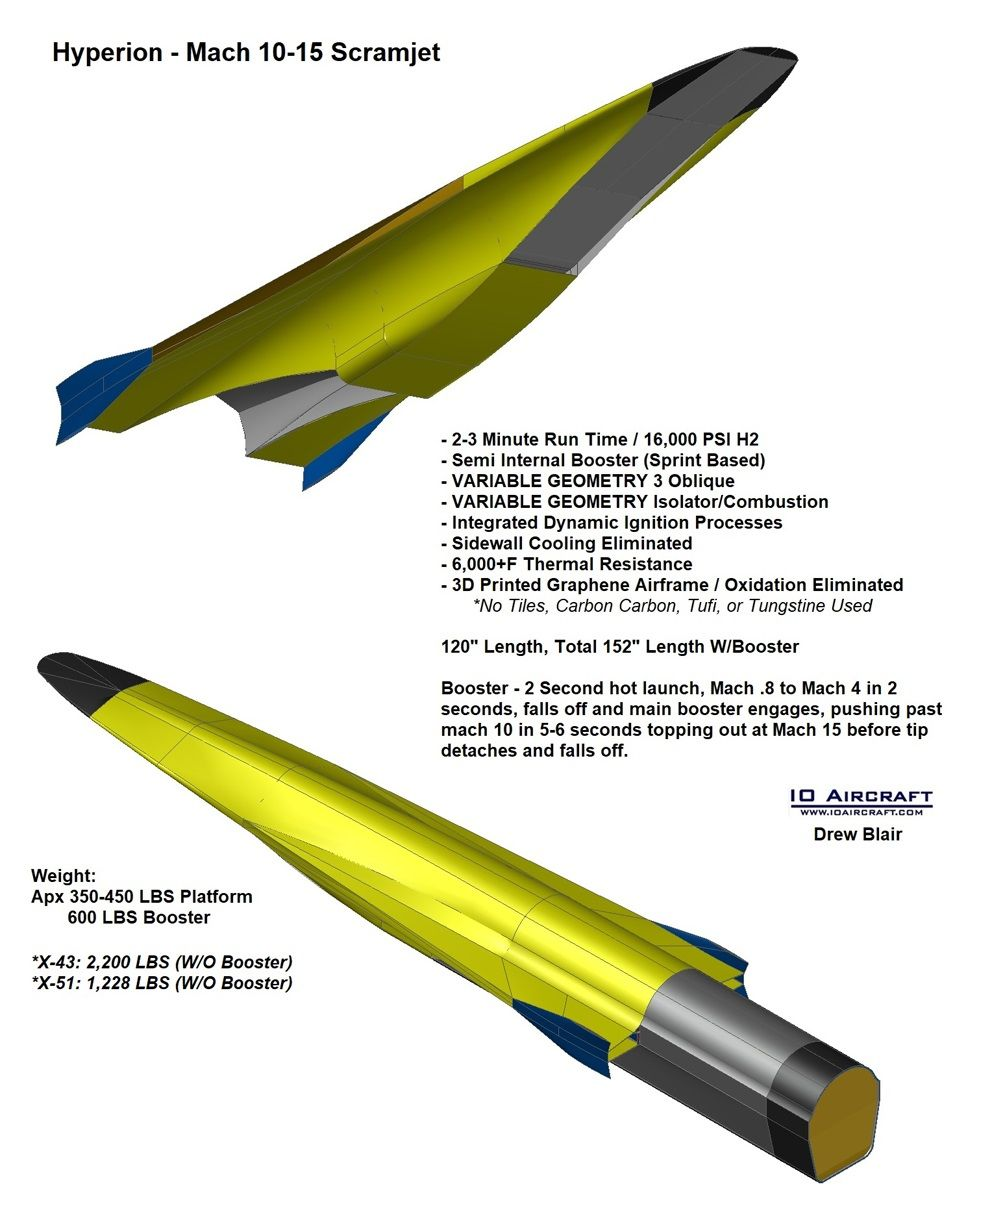 Scramjet, Hypersonic, ARRW, HAWC, Air Launched Rapid